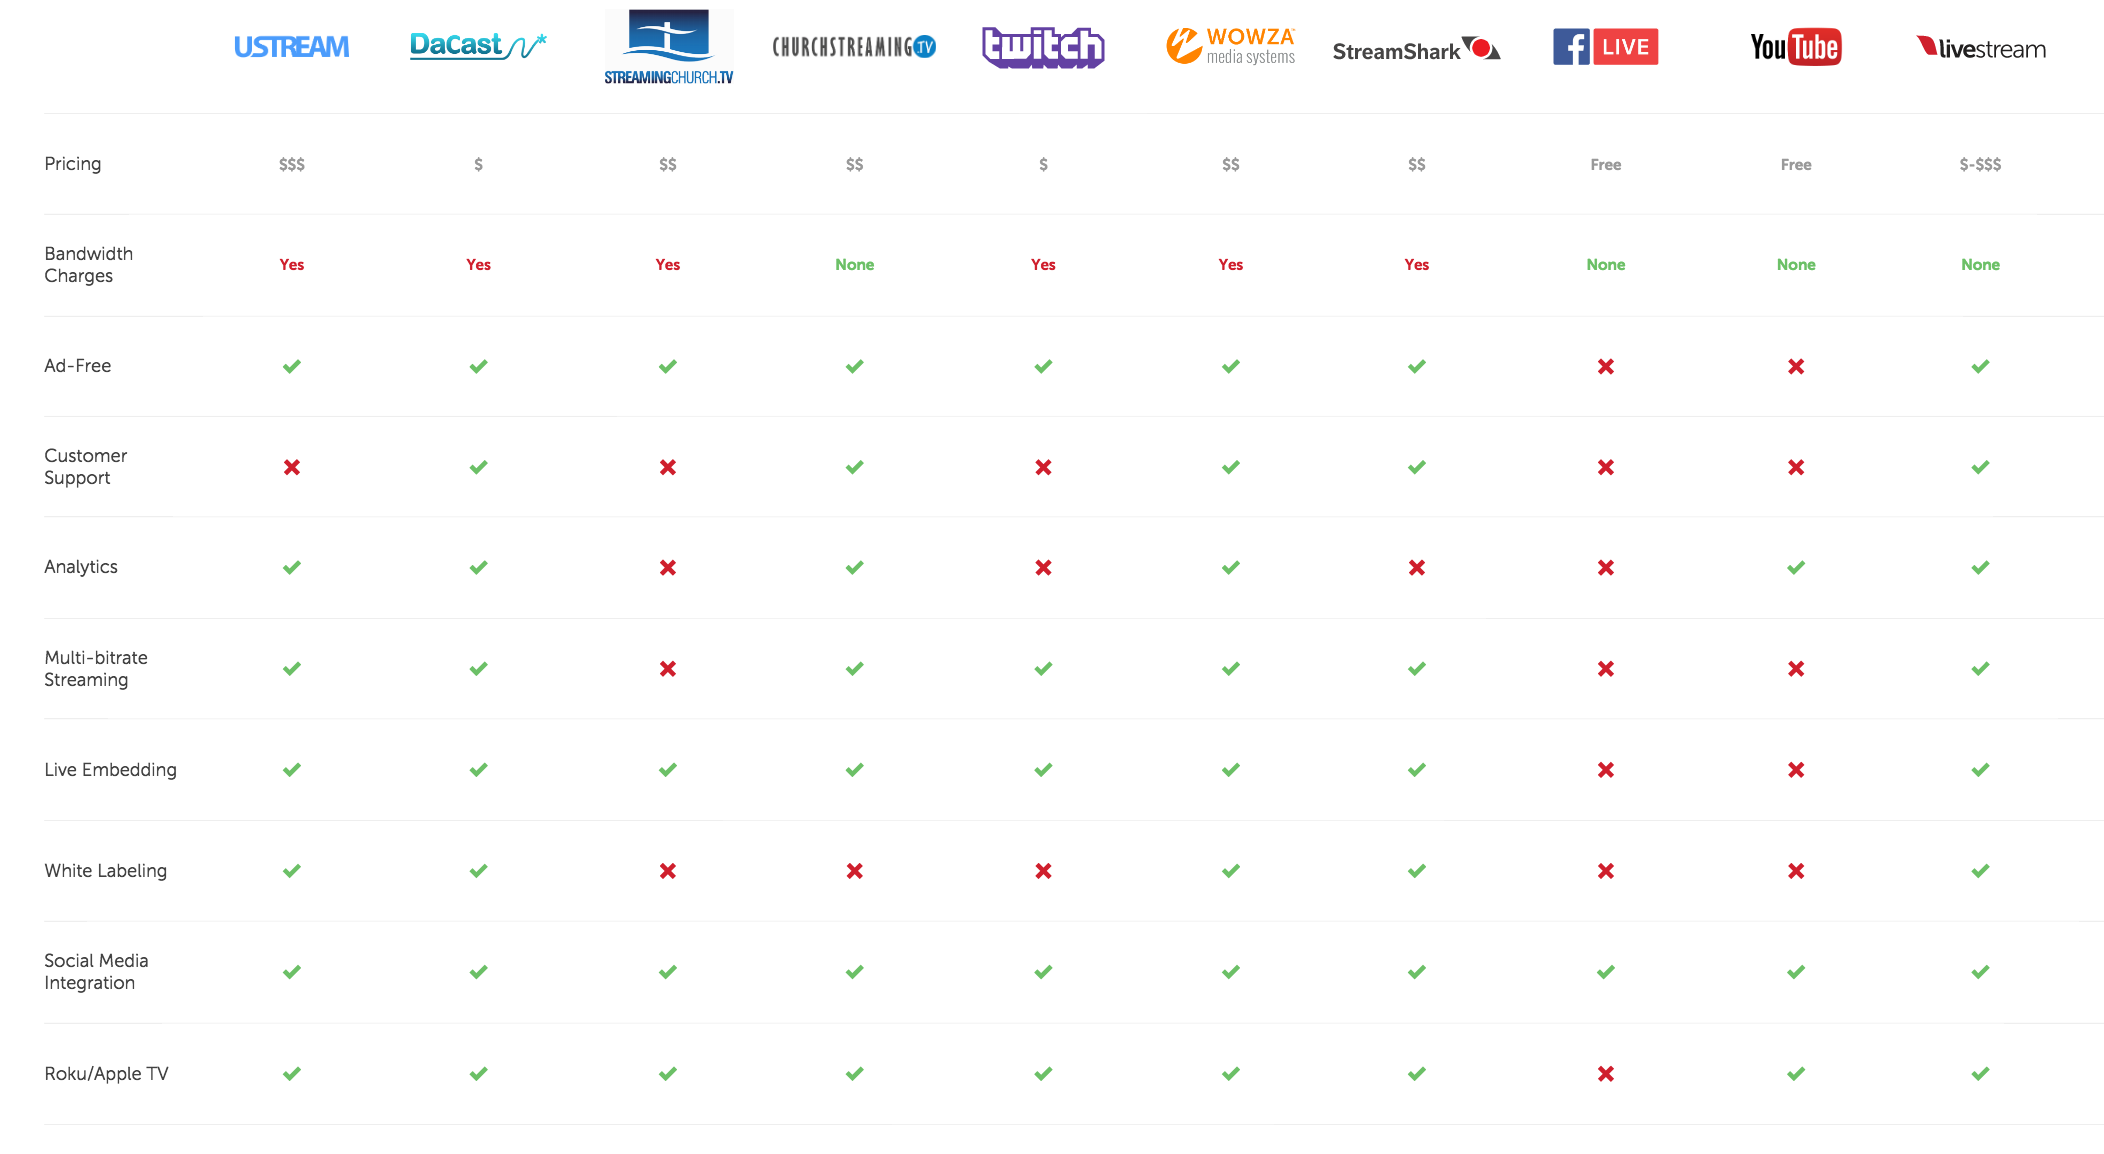 Live Streaming Platform Comparison: What to Look For